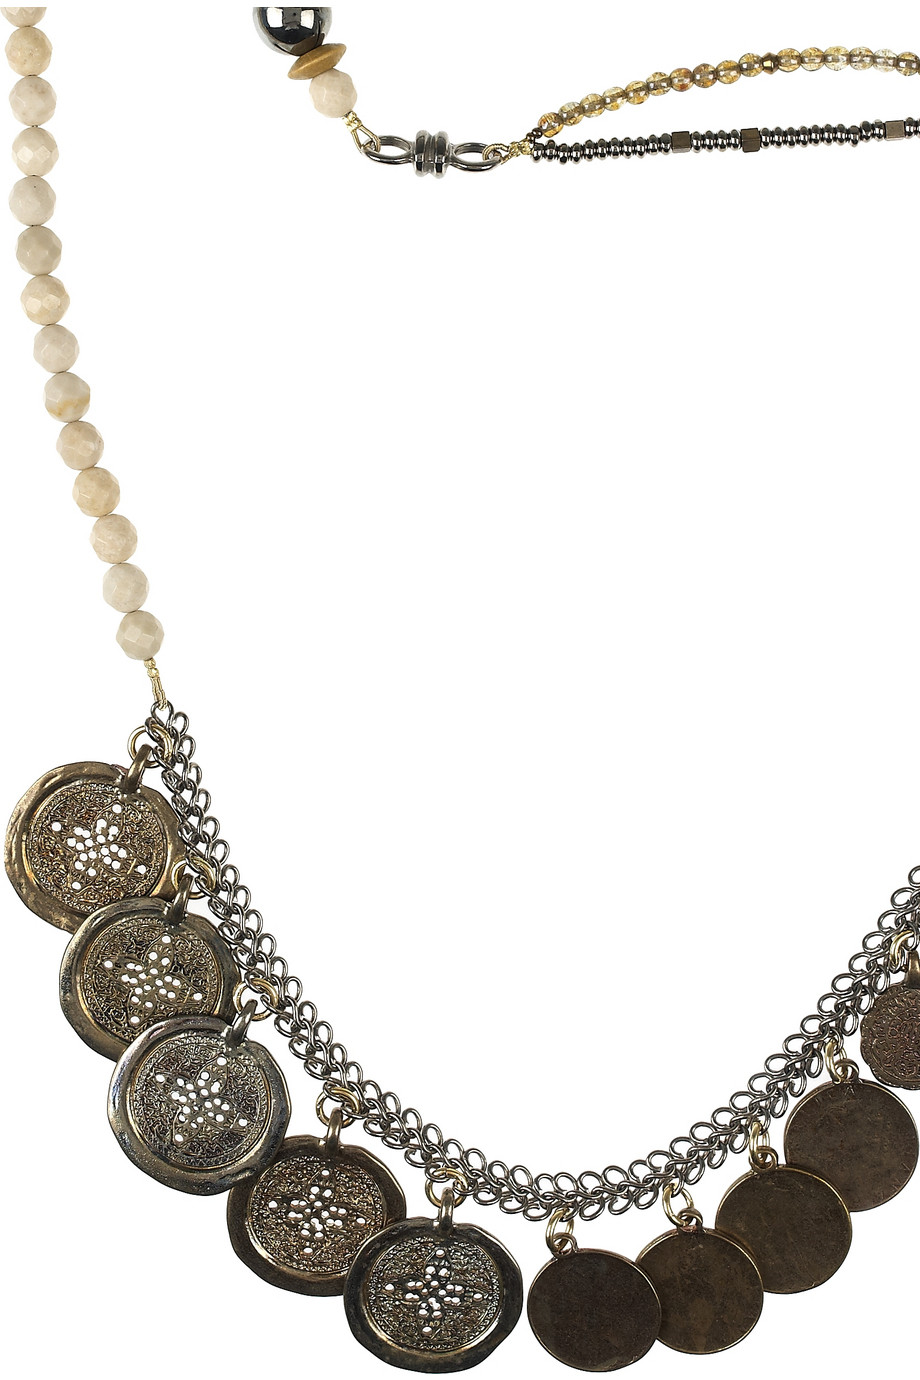 Erickson Beamon Tribute 22karat Goldplated Coin Necklace in Silver (Black)